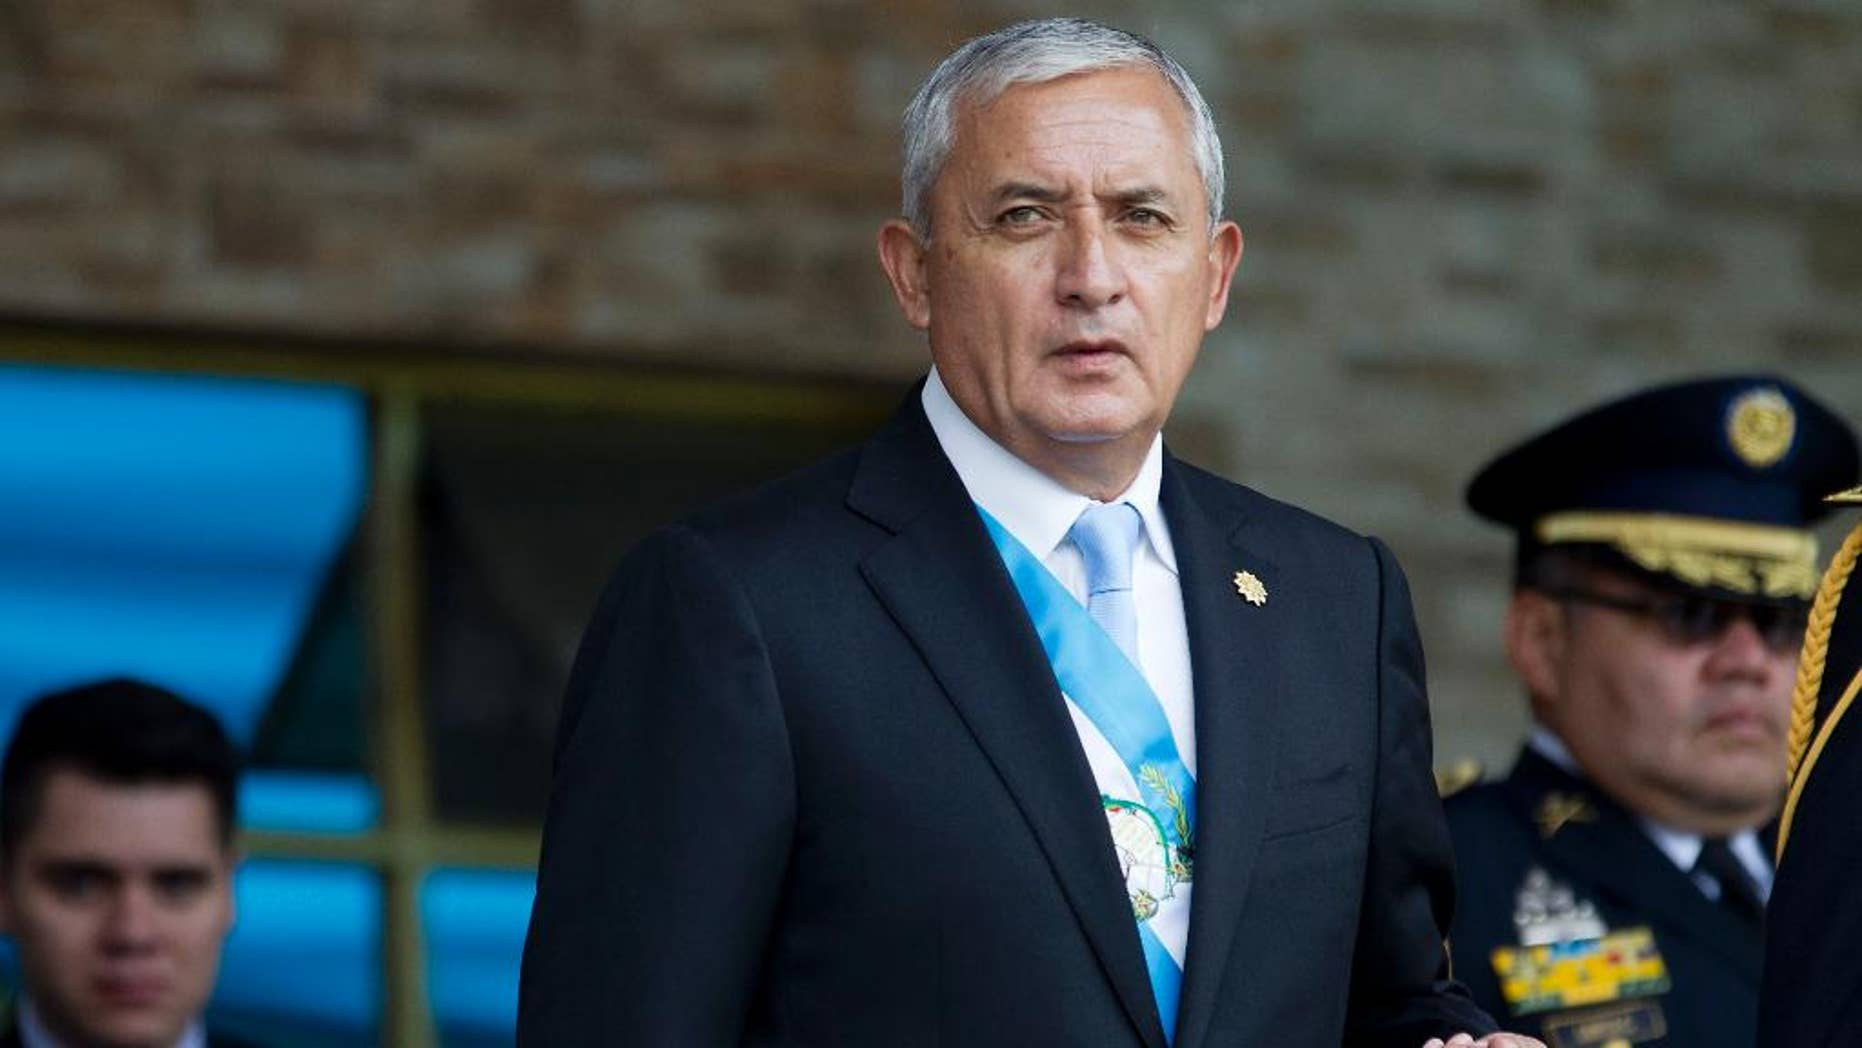 FILE - In this June 30, 2015, file photo, Guatemala's President Otto Perez Molina arrives to the Army general headquarters for the Army Day parade in Guatemala City. An attempt to withdraw Perez Molina's immunity from prosecution died in Congress on Thursday, Aug. 13, 2015, following a string of corruption scandals that sparked large protests. (AP Photo/Moises Castillo, File)